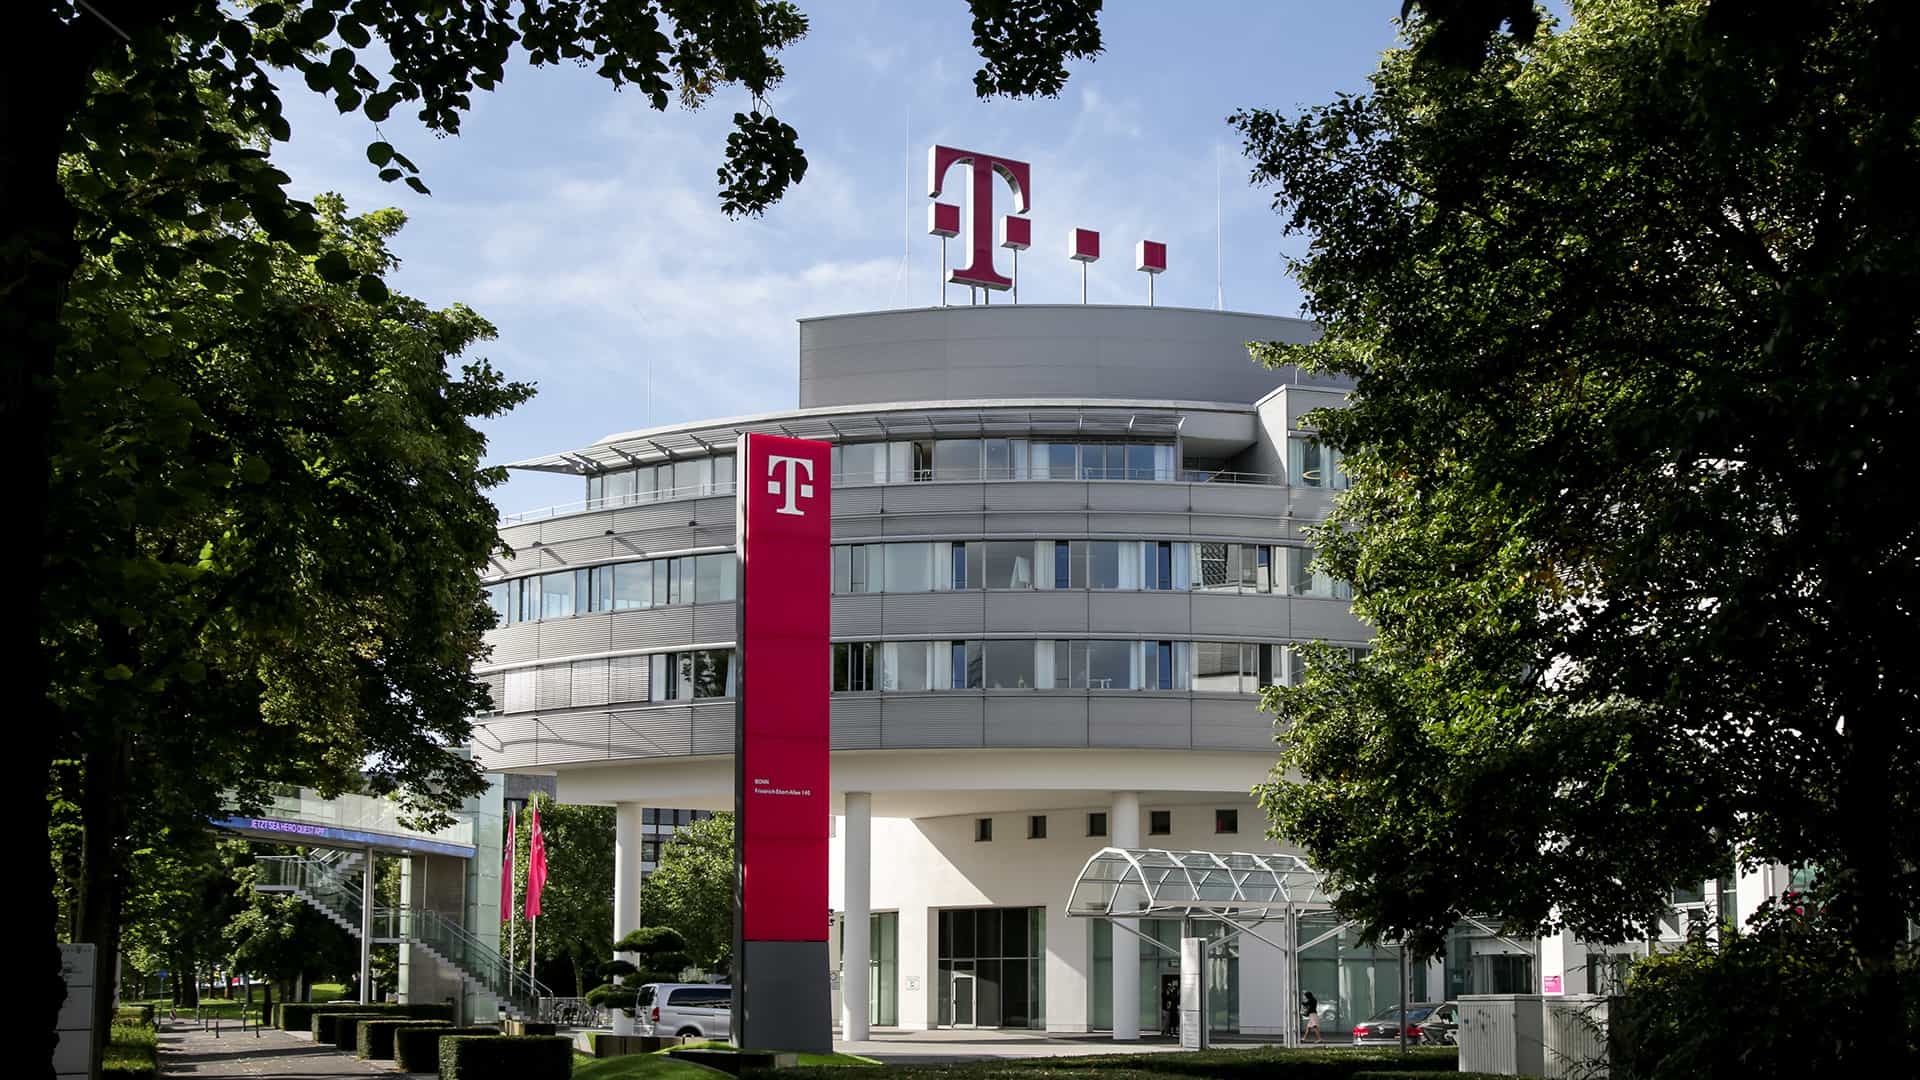 Smart Home: ALLYSCA erbringt Notfallservices in der Kooperation ERGO / Telekom